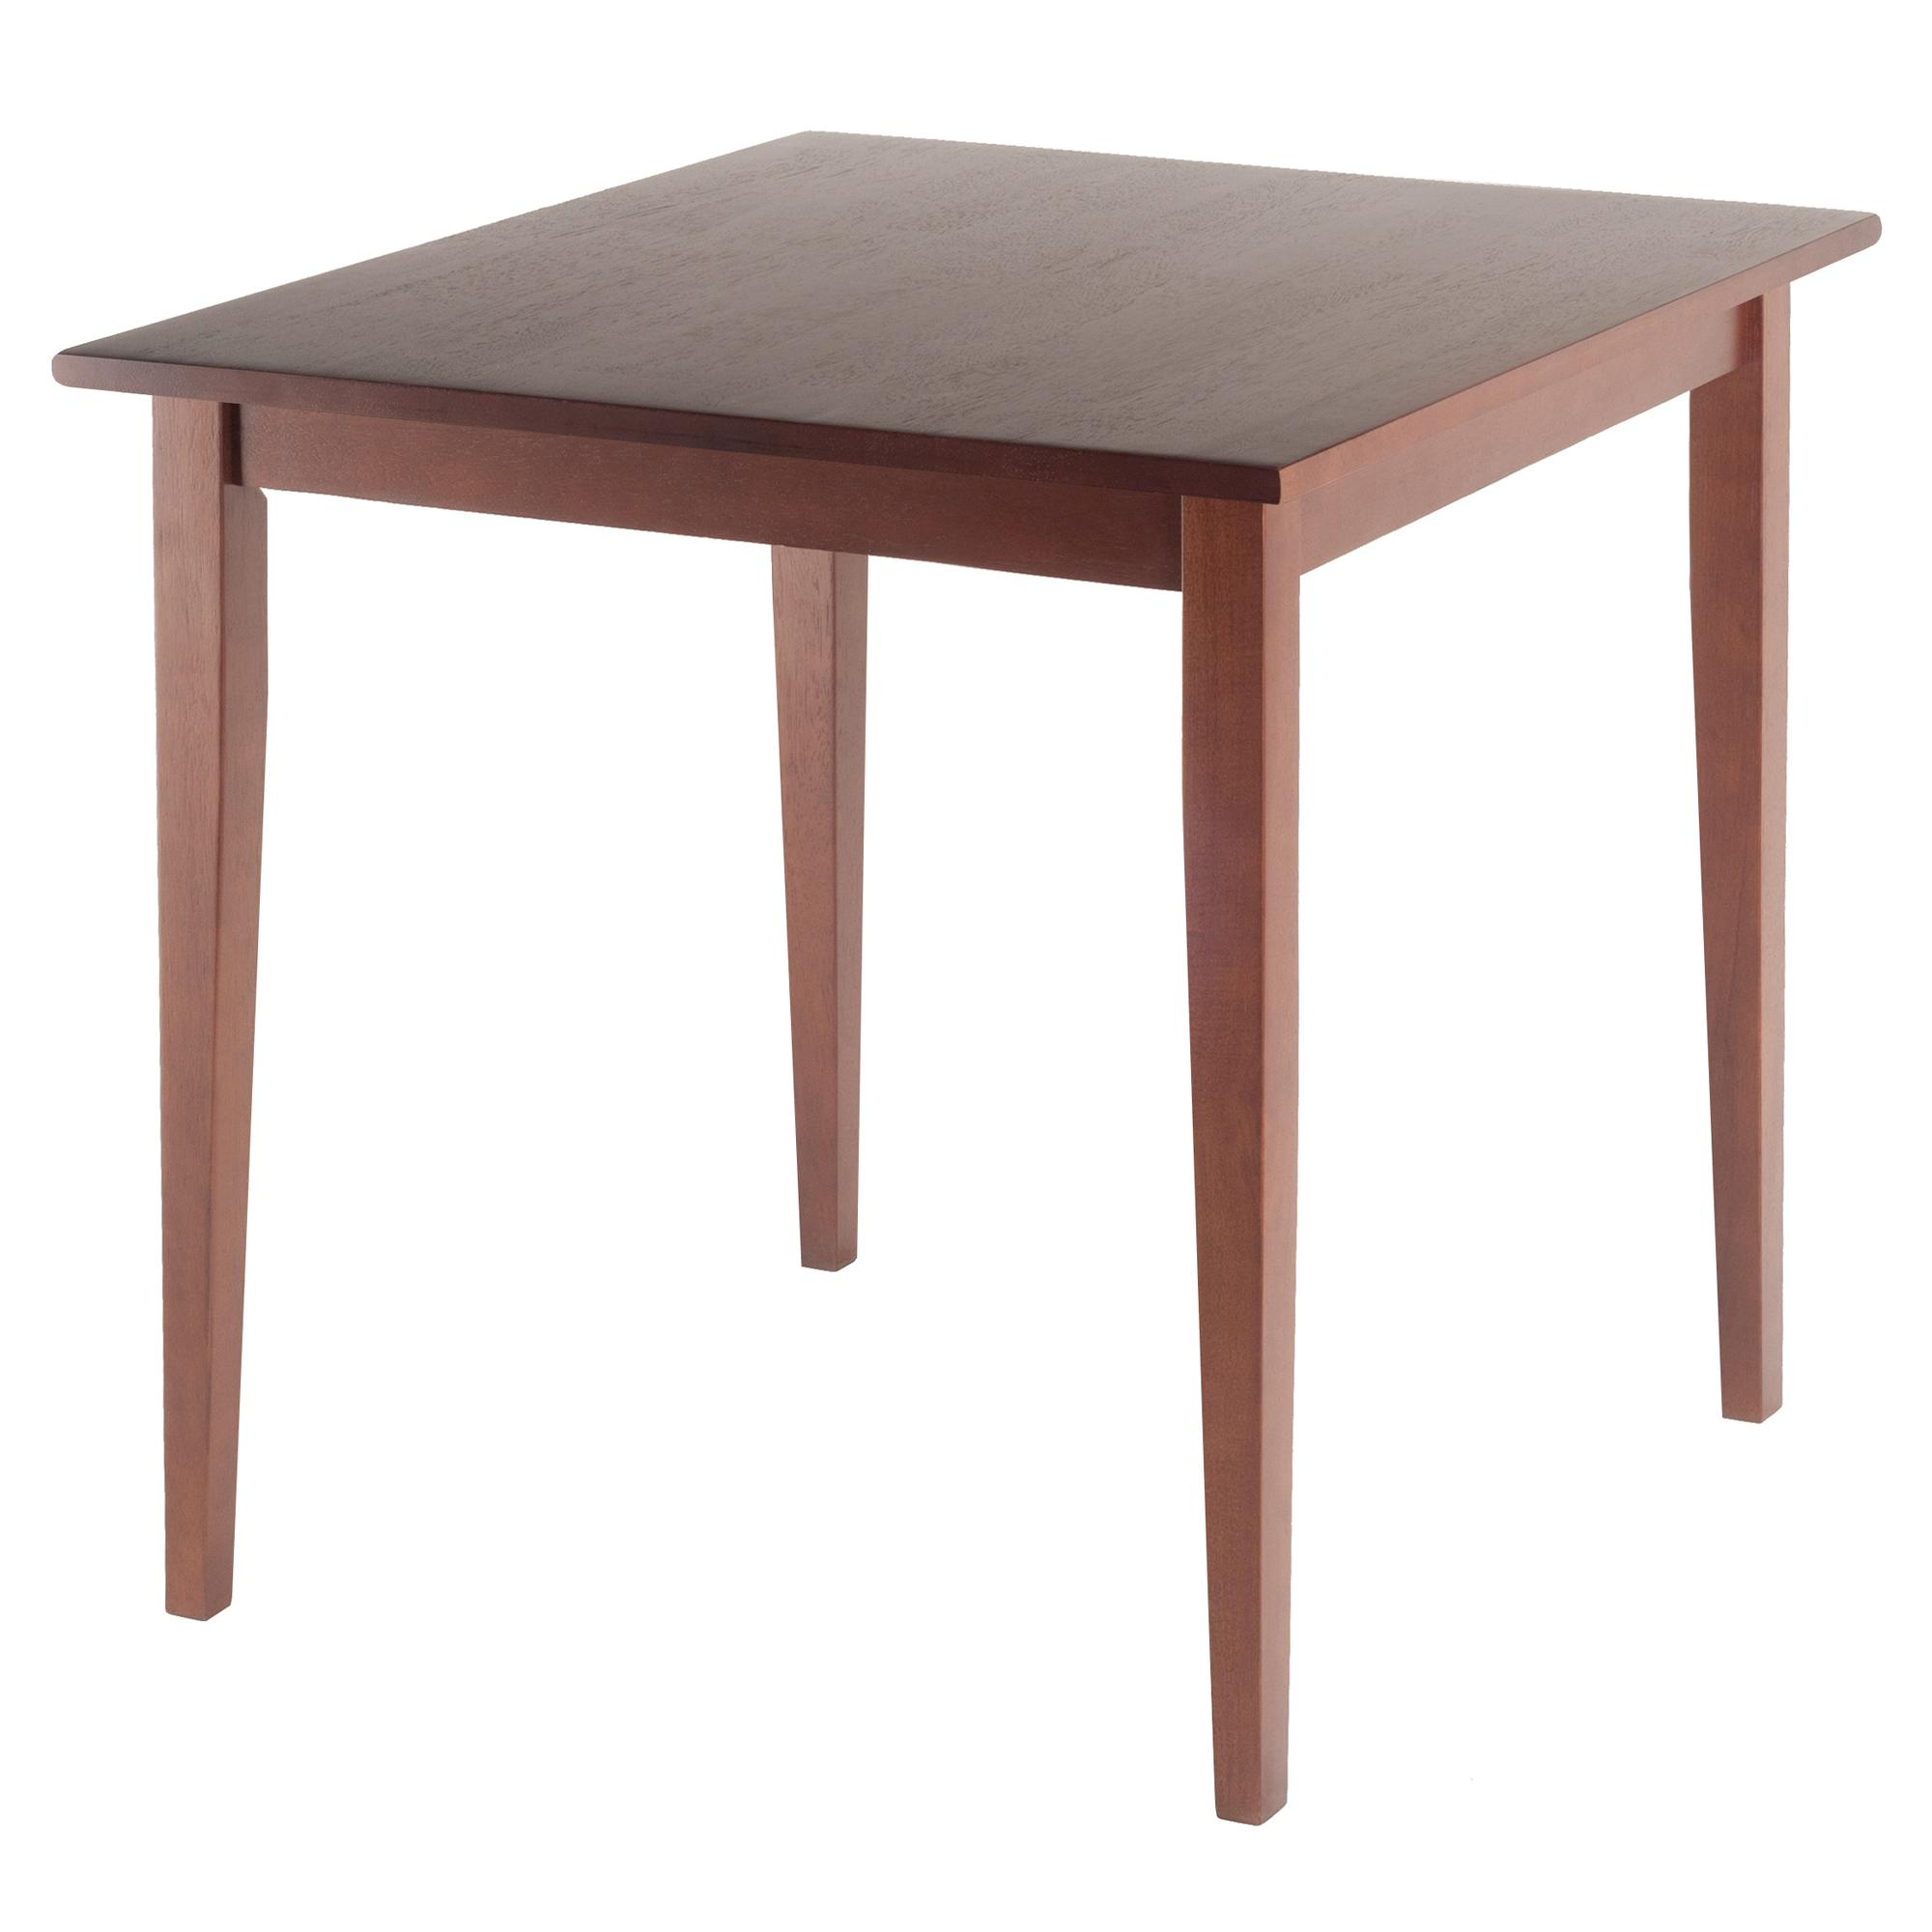 Amazon Winsome Wood Groveland Square Dining Table in Antique